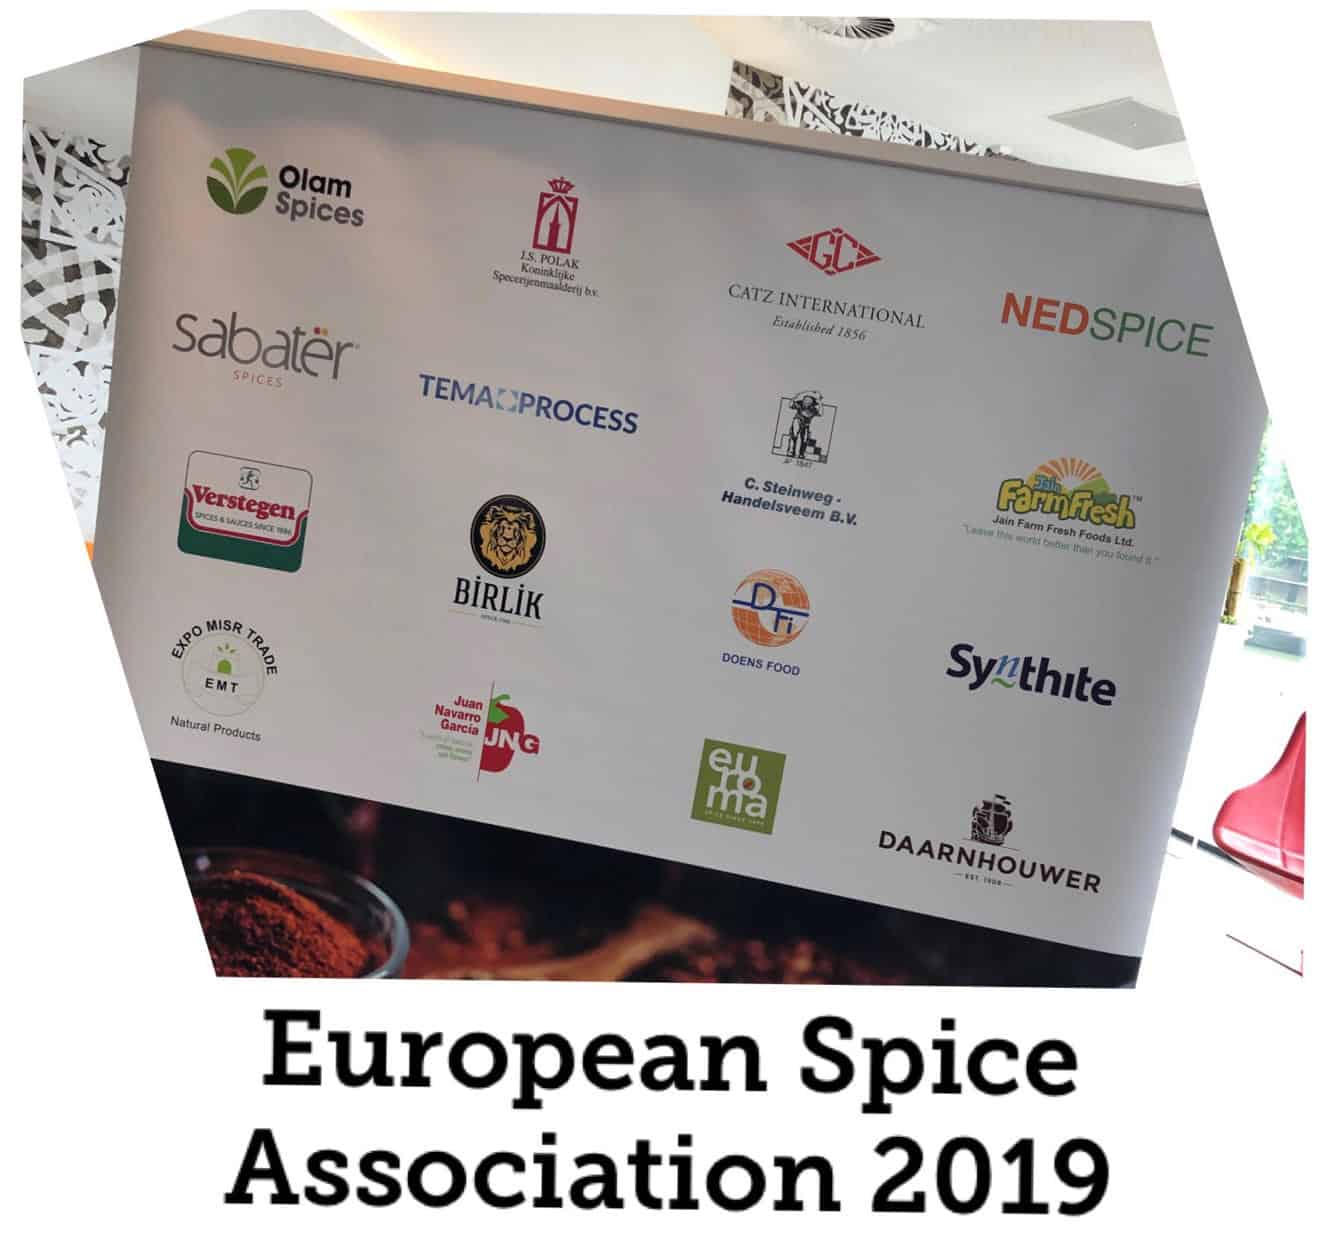 Eruopean spice association